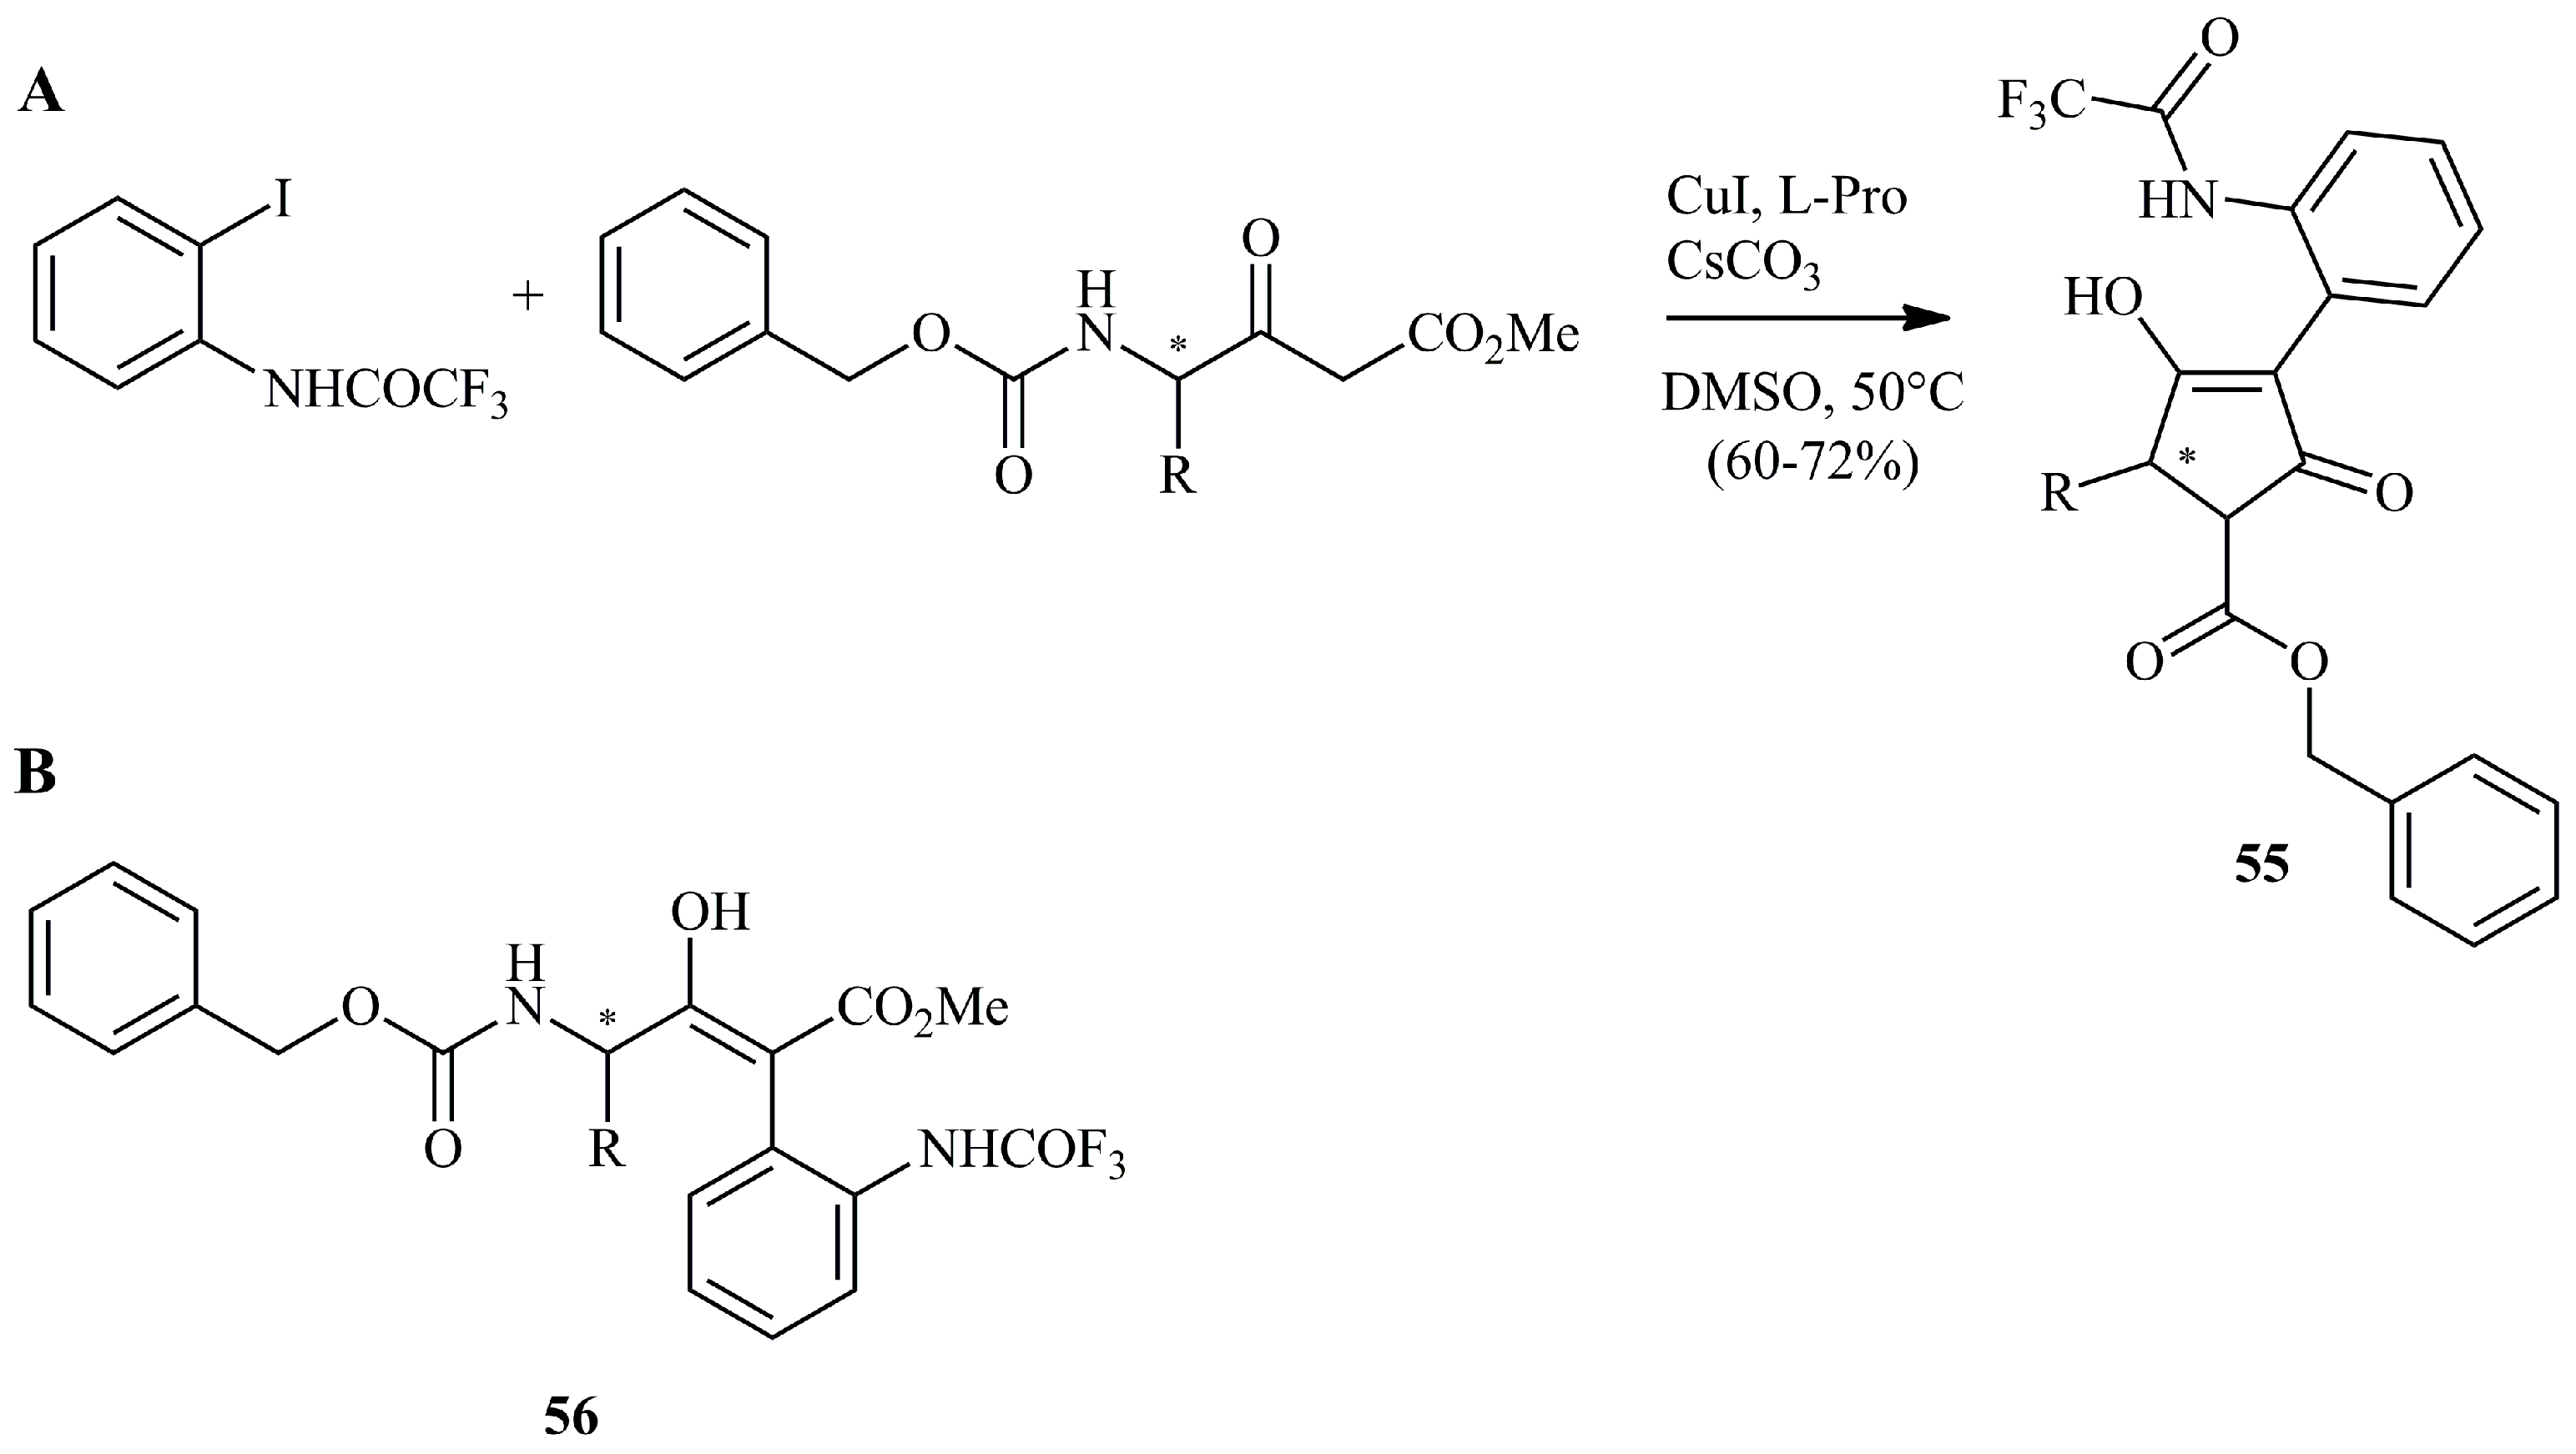 catalysis in organic syntheses 1977 smith gerard